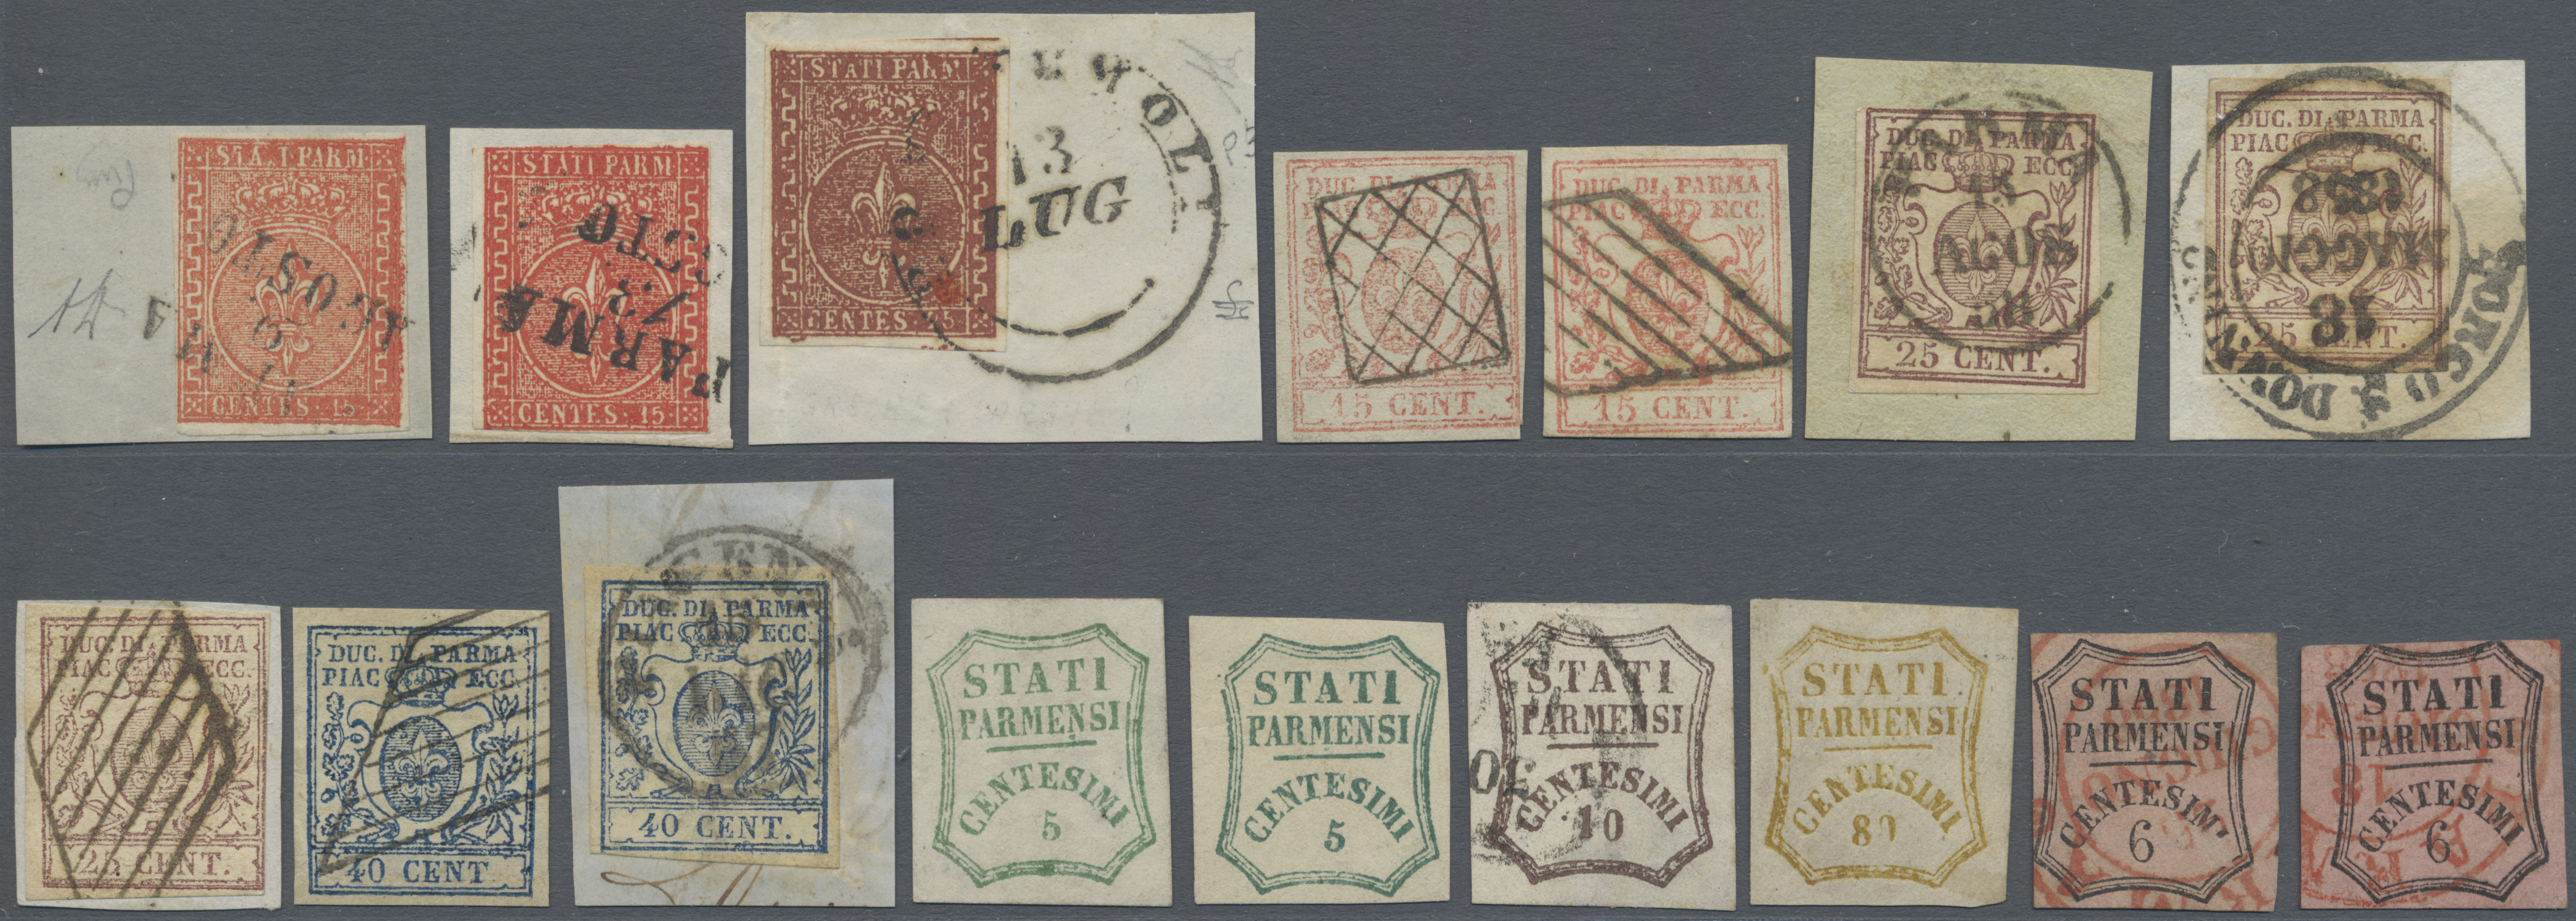 Lot 17193 - Italien - Altitalienische Staaten: Parma  -  Auktionshaus Christoph Gärtner GmbH & Co. KG Sale #48 collections Overseas  Airmail / Ship mail & Thematics